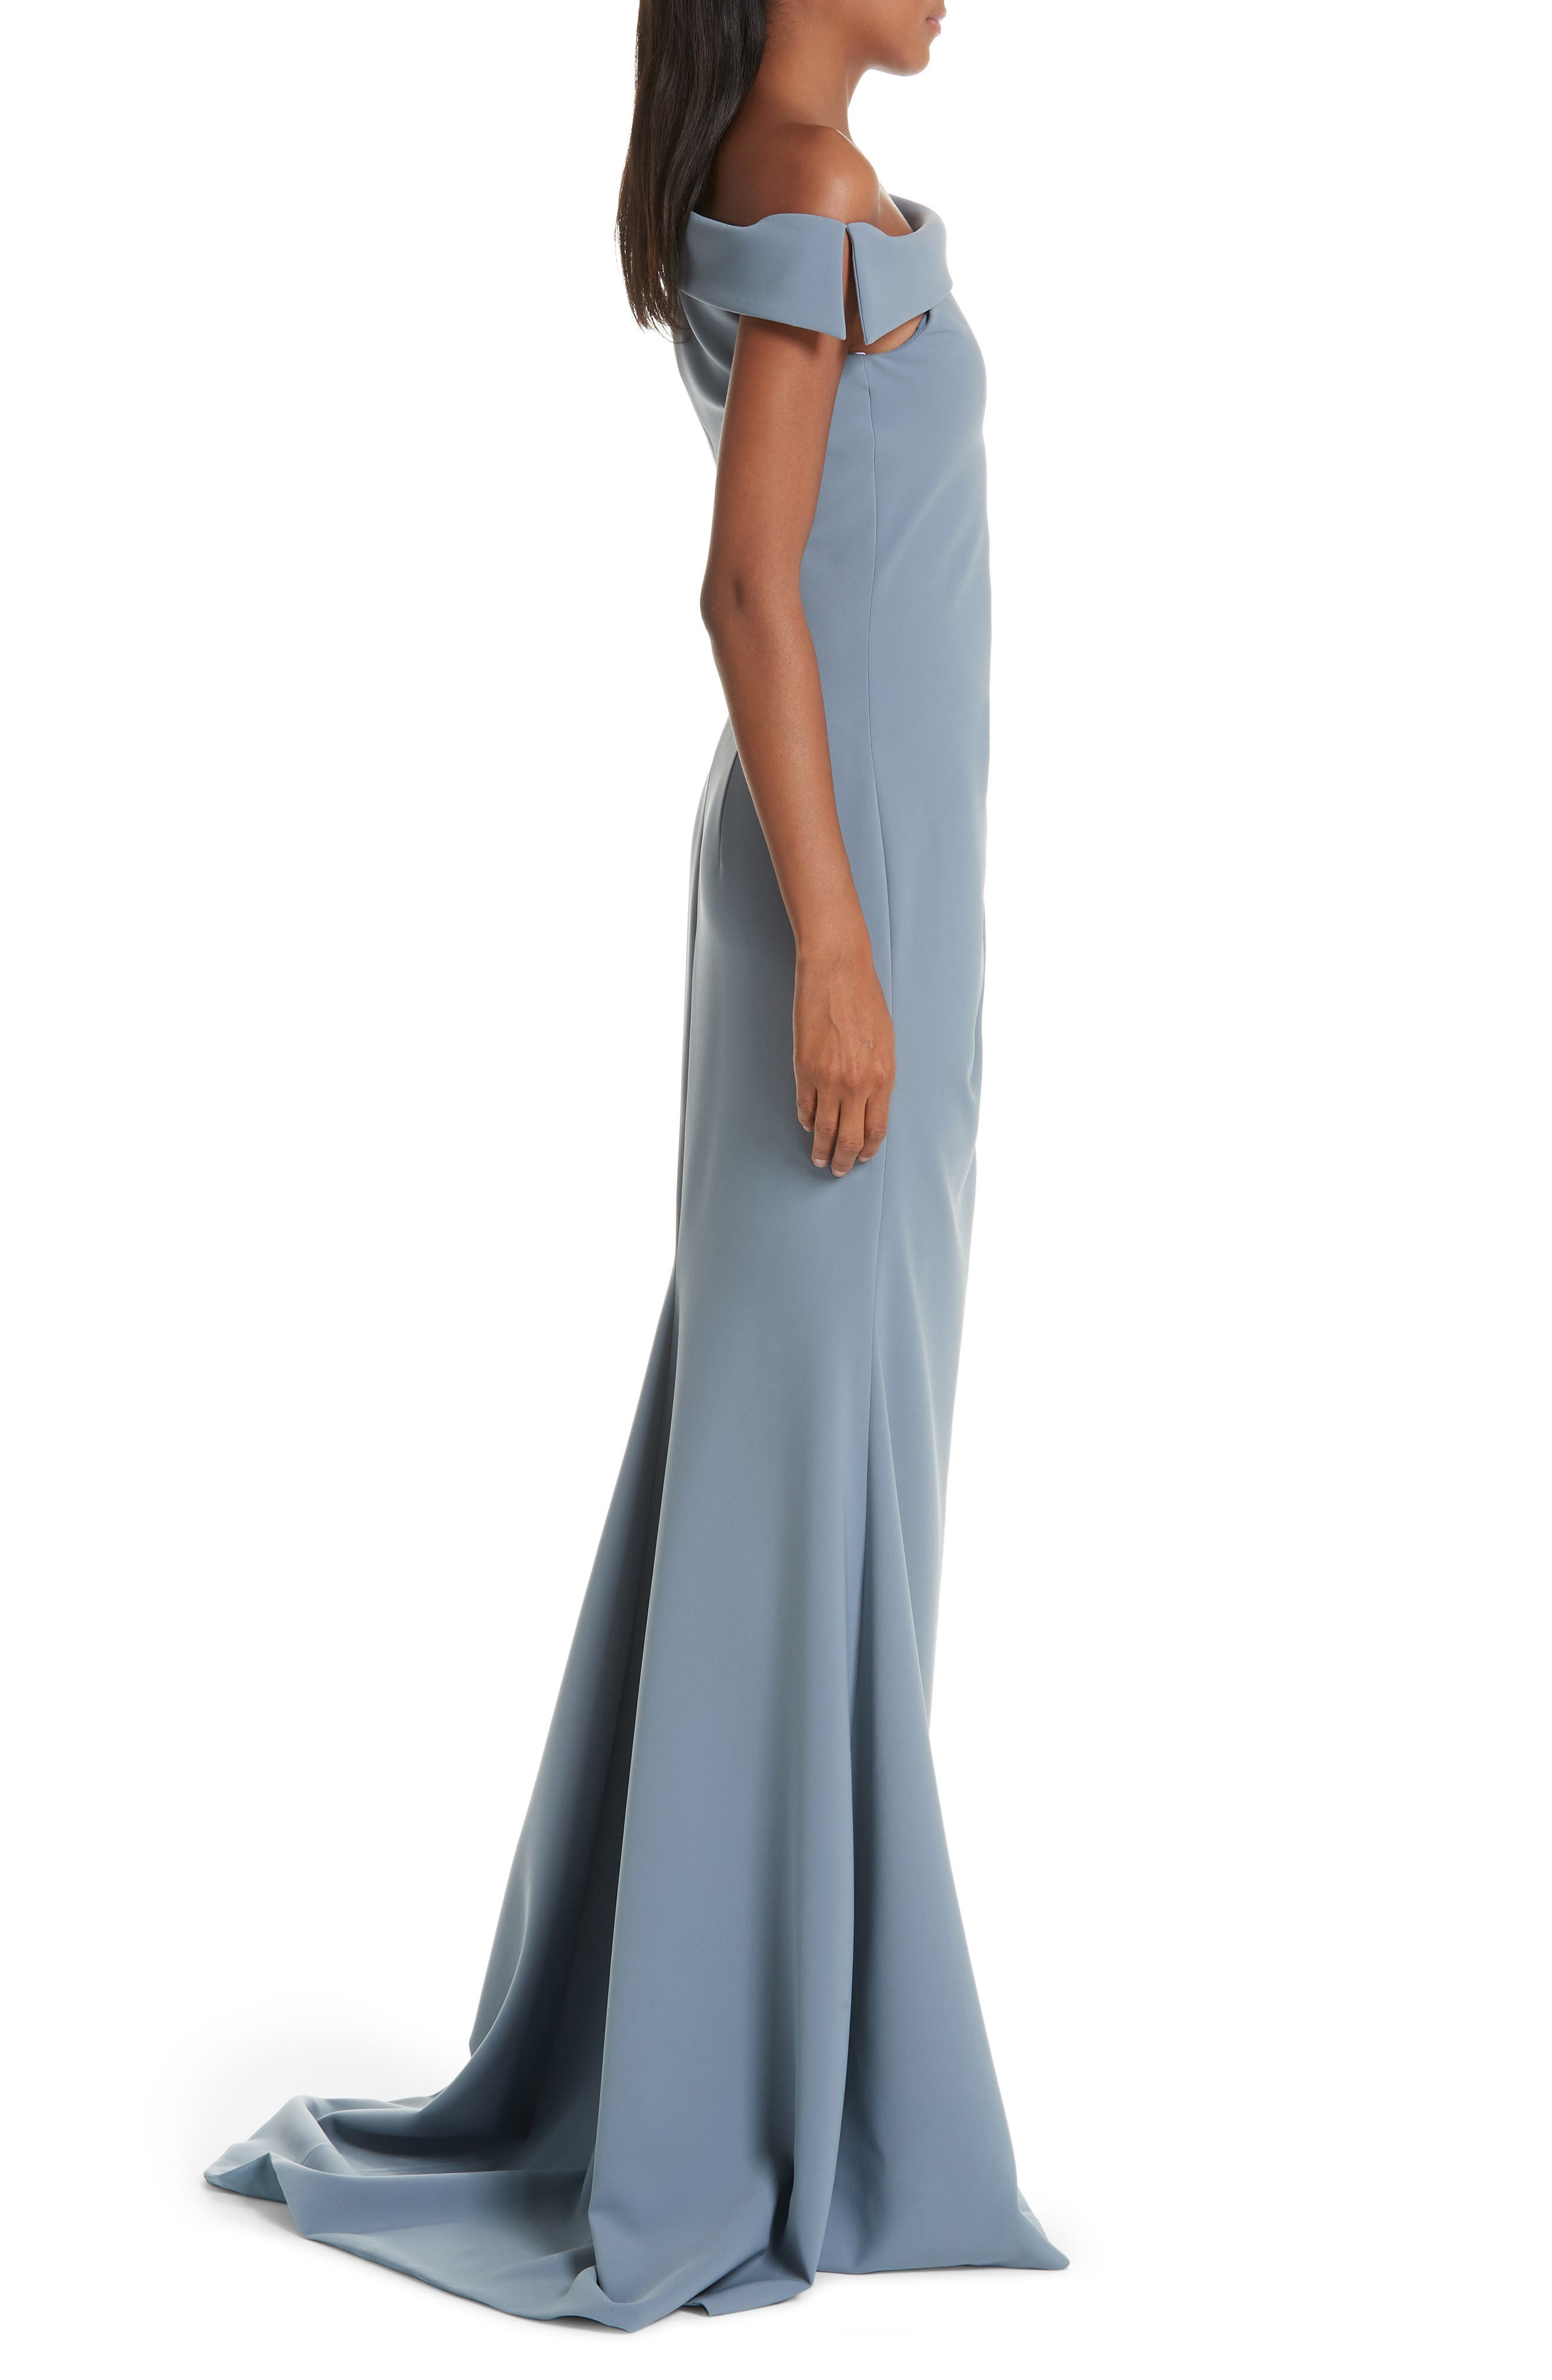 One-Shoulder Evening Dress,                             Alternate thumbnail 3, color,                             SHADOW BLUE